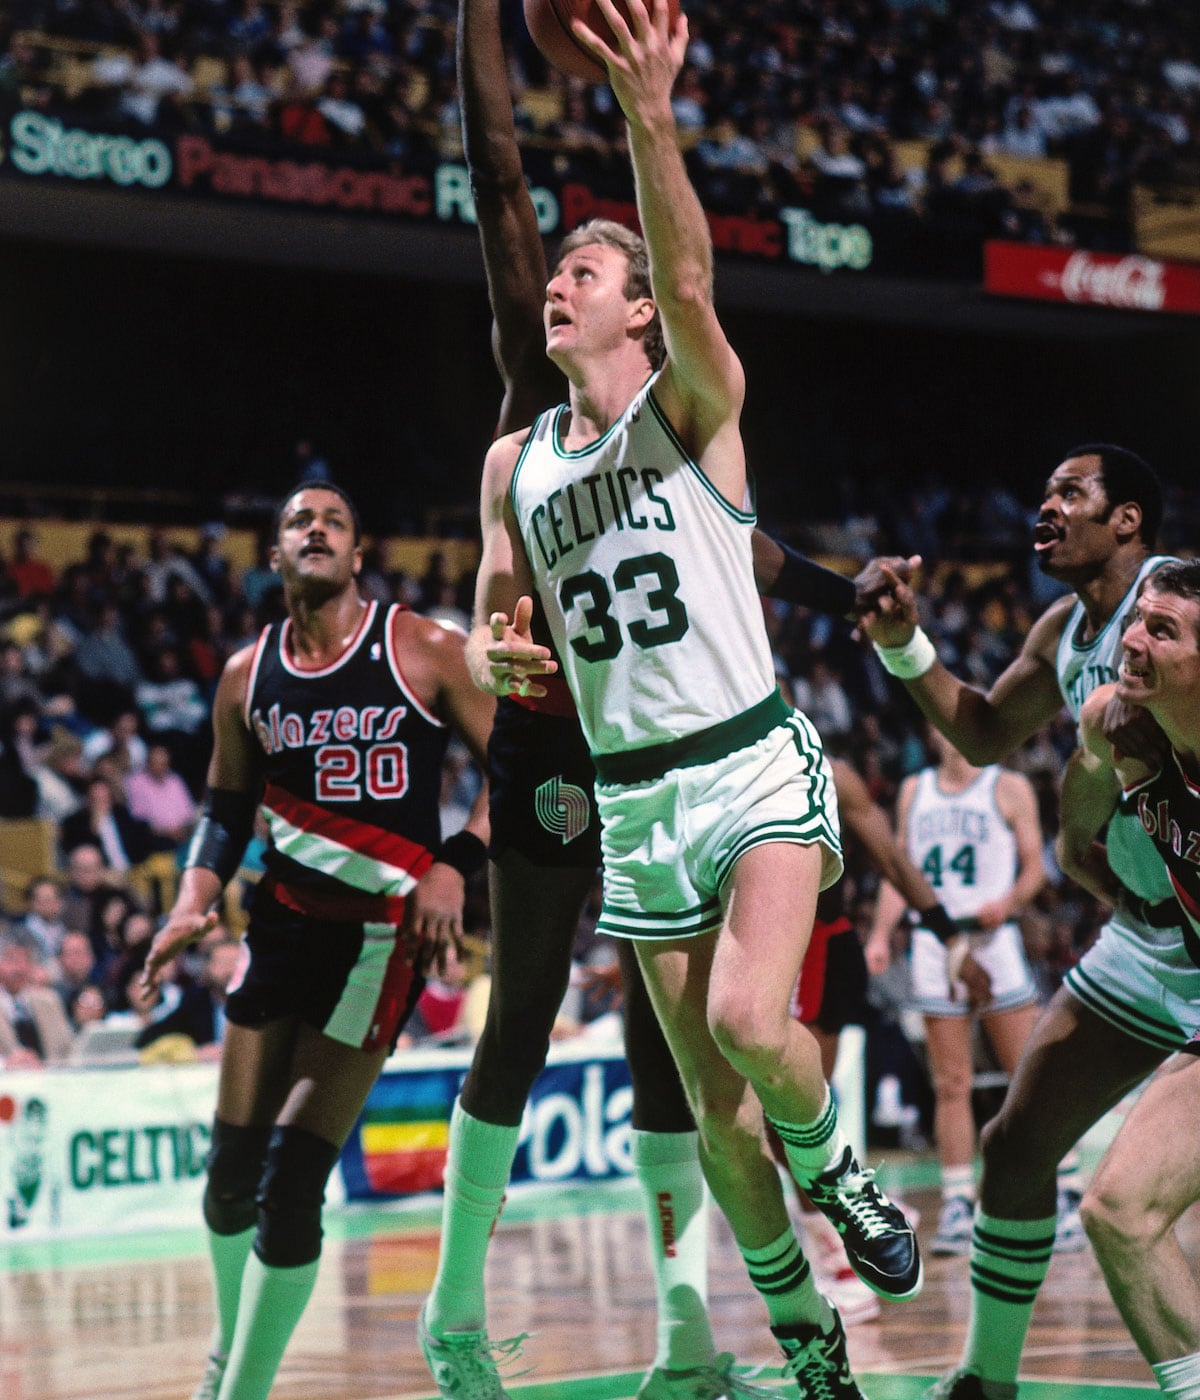 Larry Bird #33 of the Boston Celtics shoots a layup during a game against the Portland Trail Blazers circa 1986 at the Boston Garden in Boston, Massachusetts.